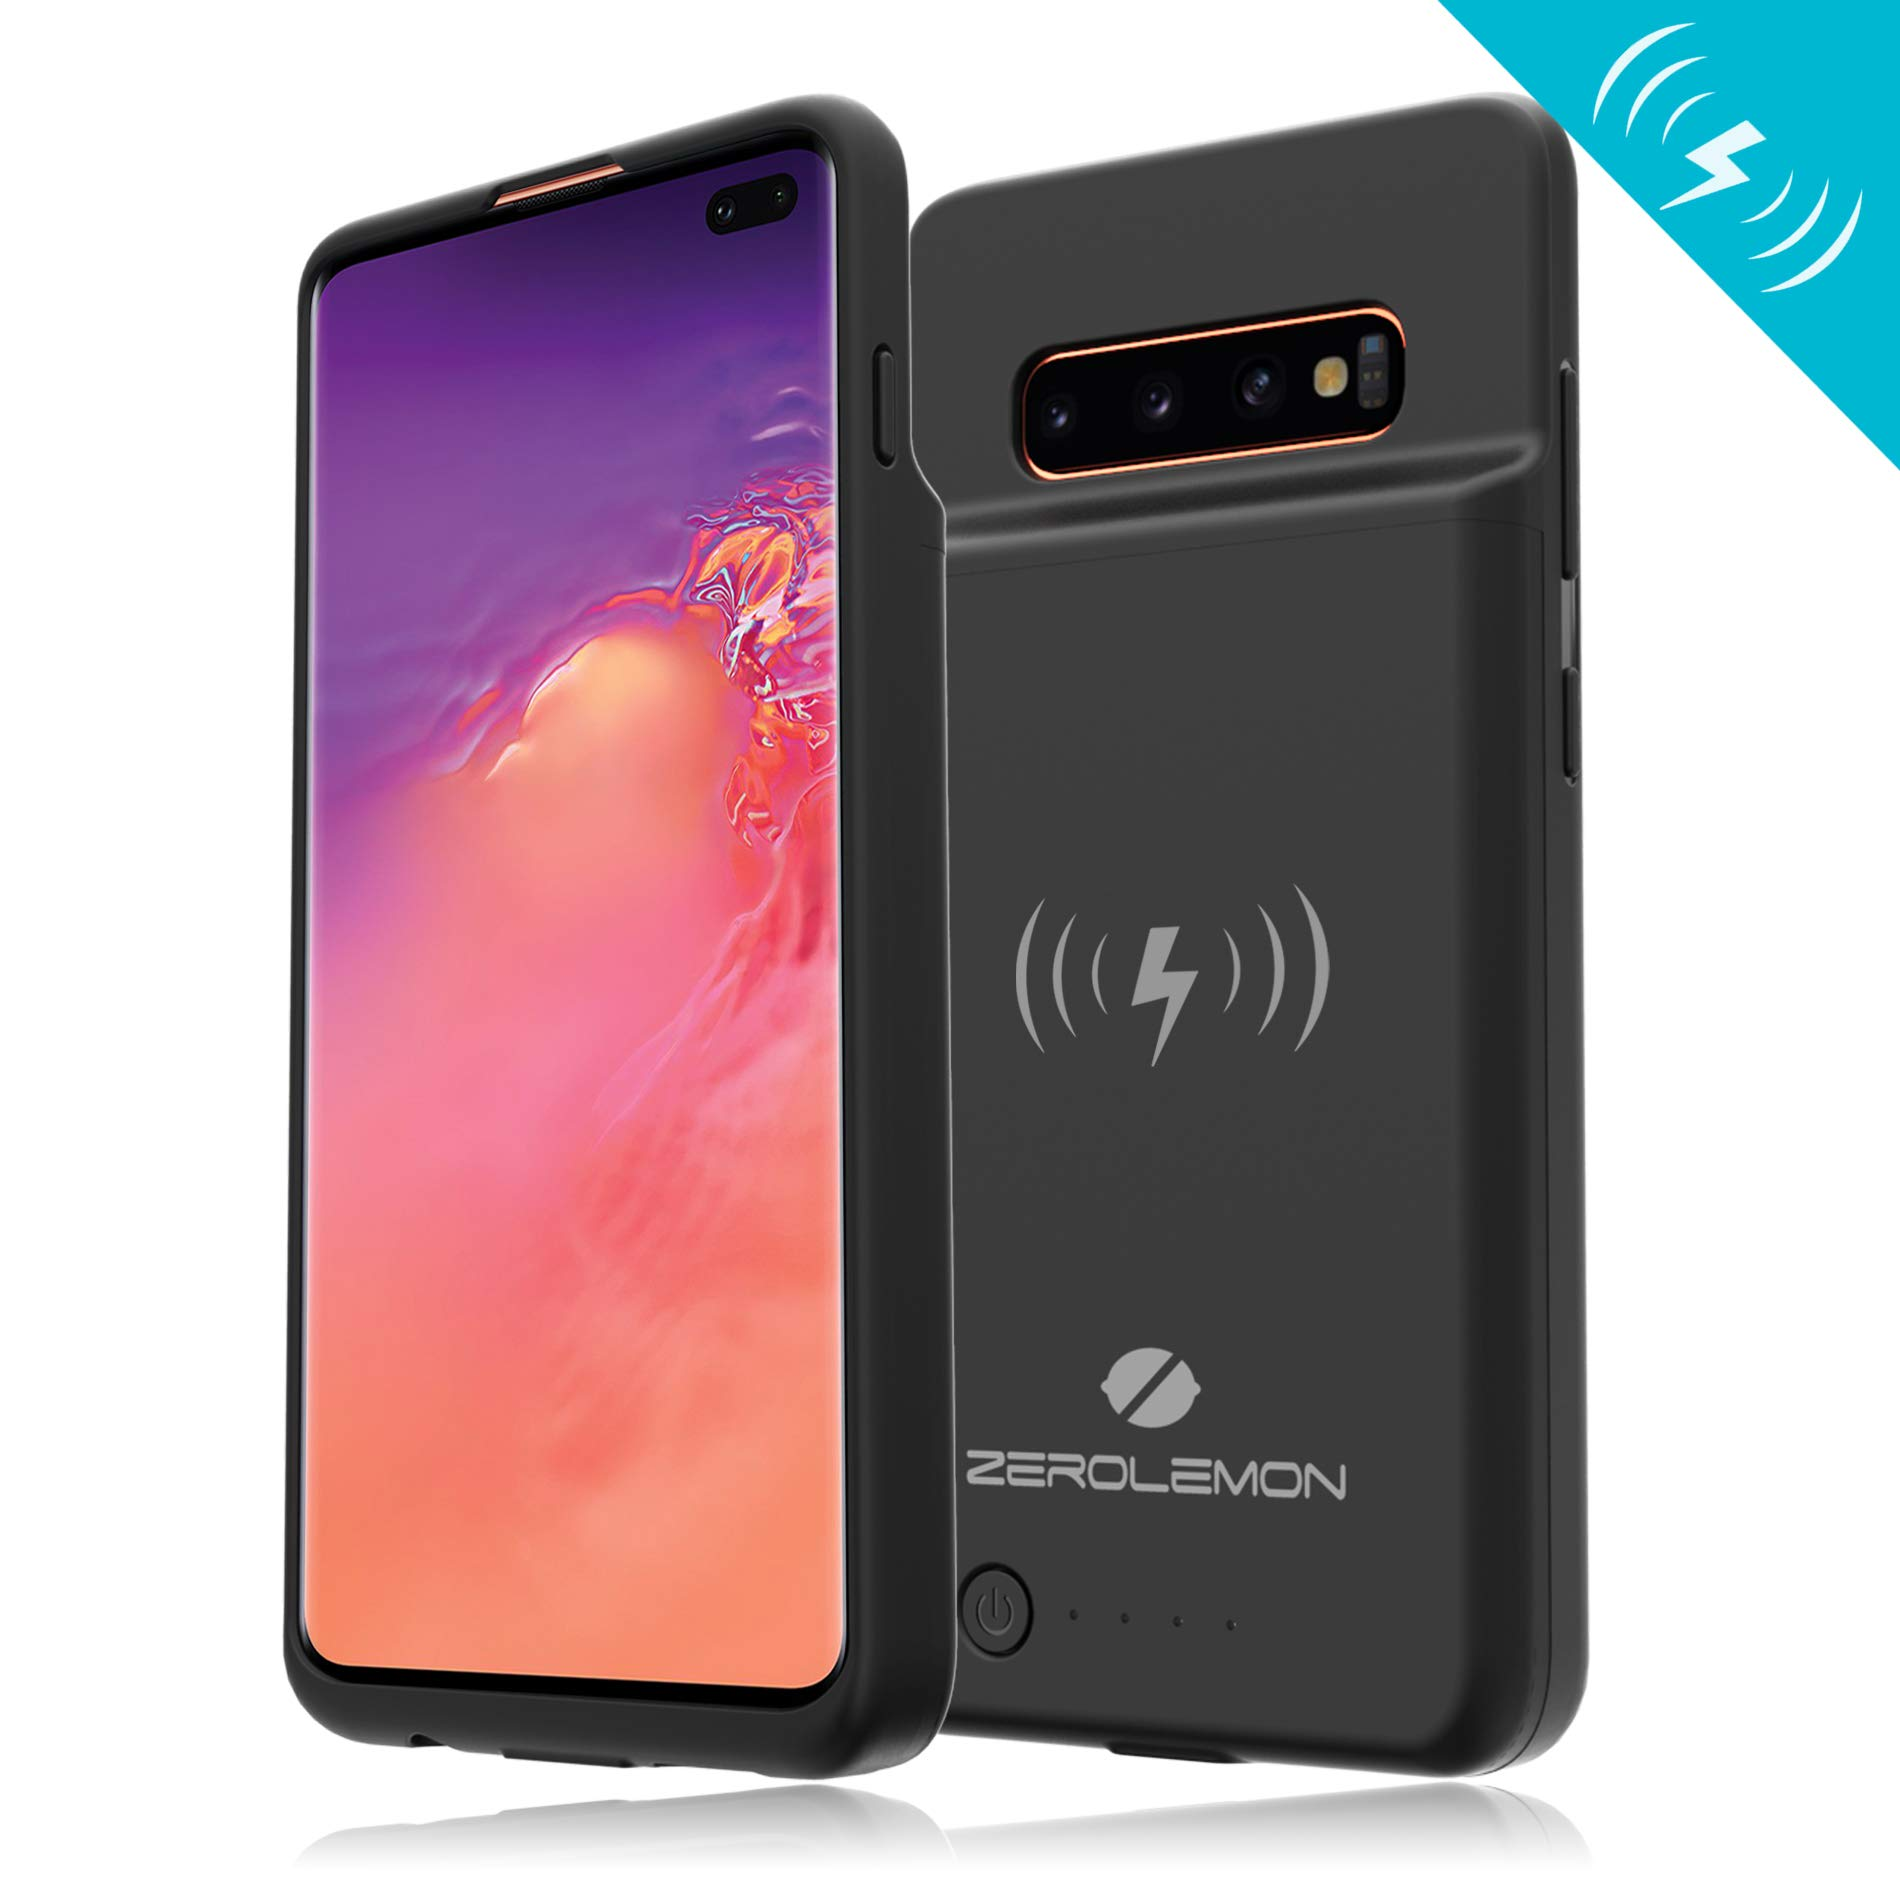 Funda Con Bateria De 5000mah Para Samsung Galaxy S10 Plus Zerolemon [711ms3qb]